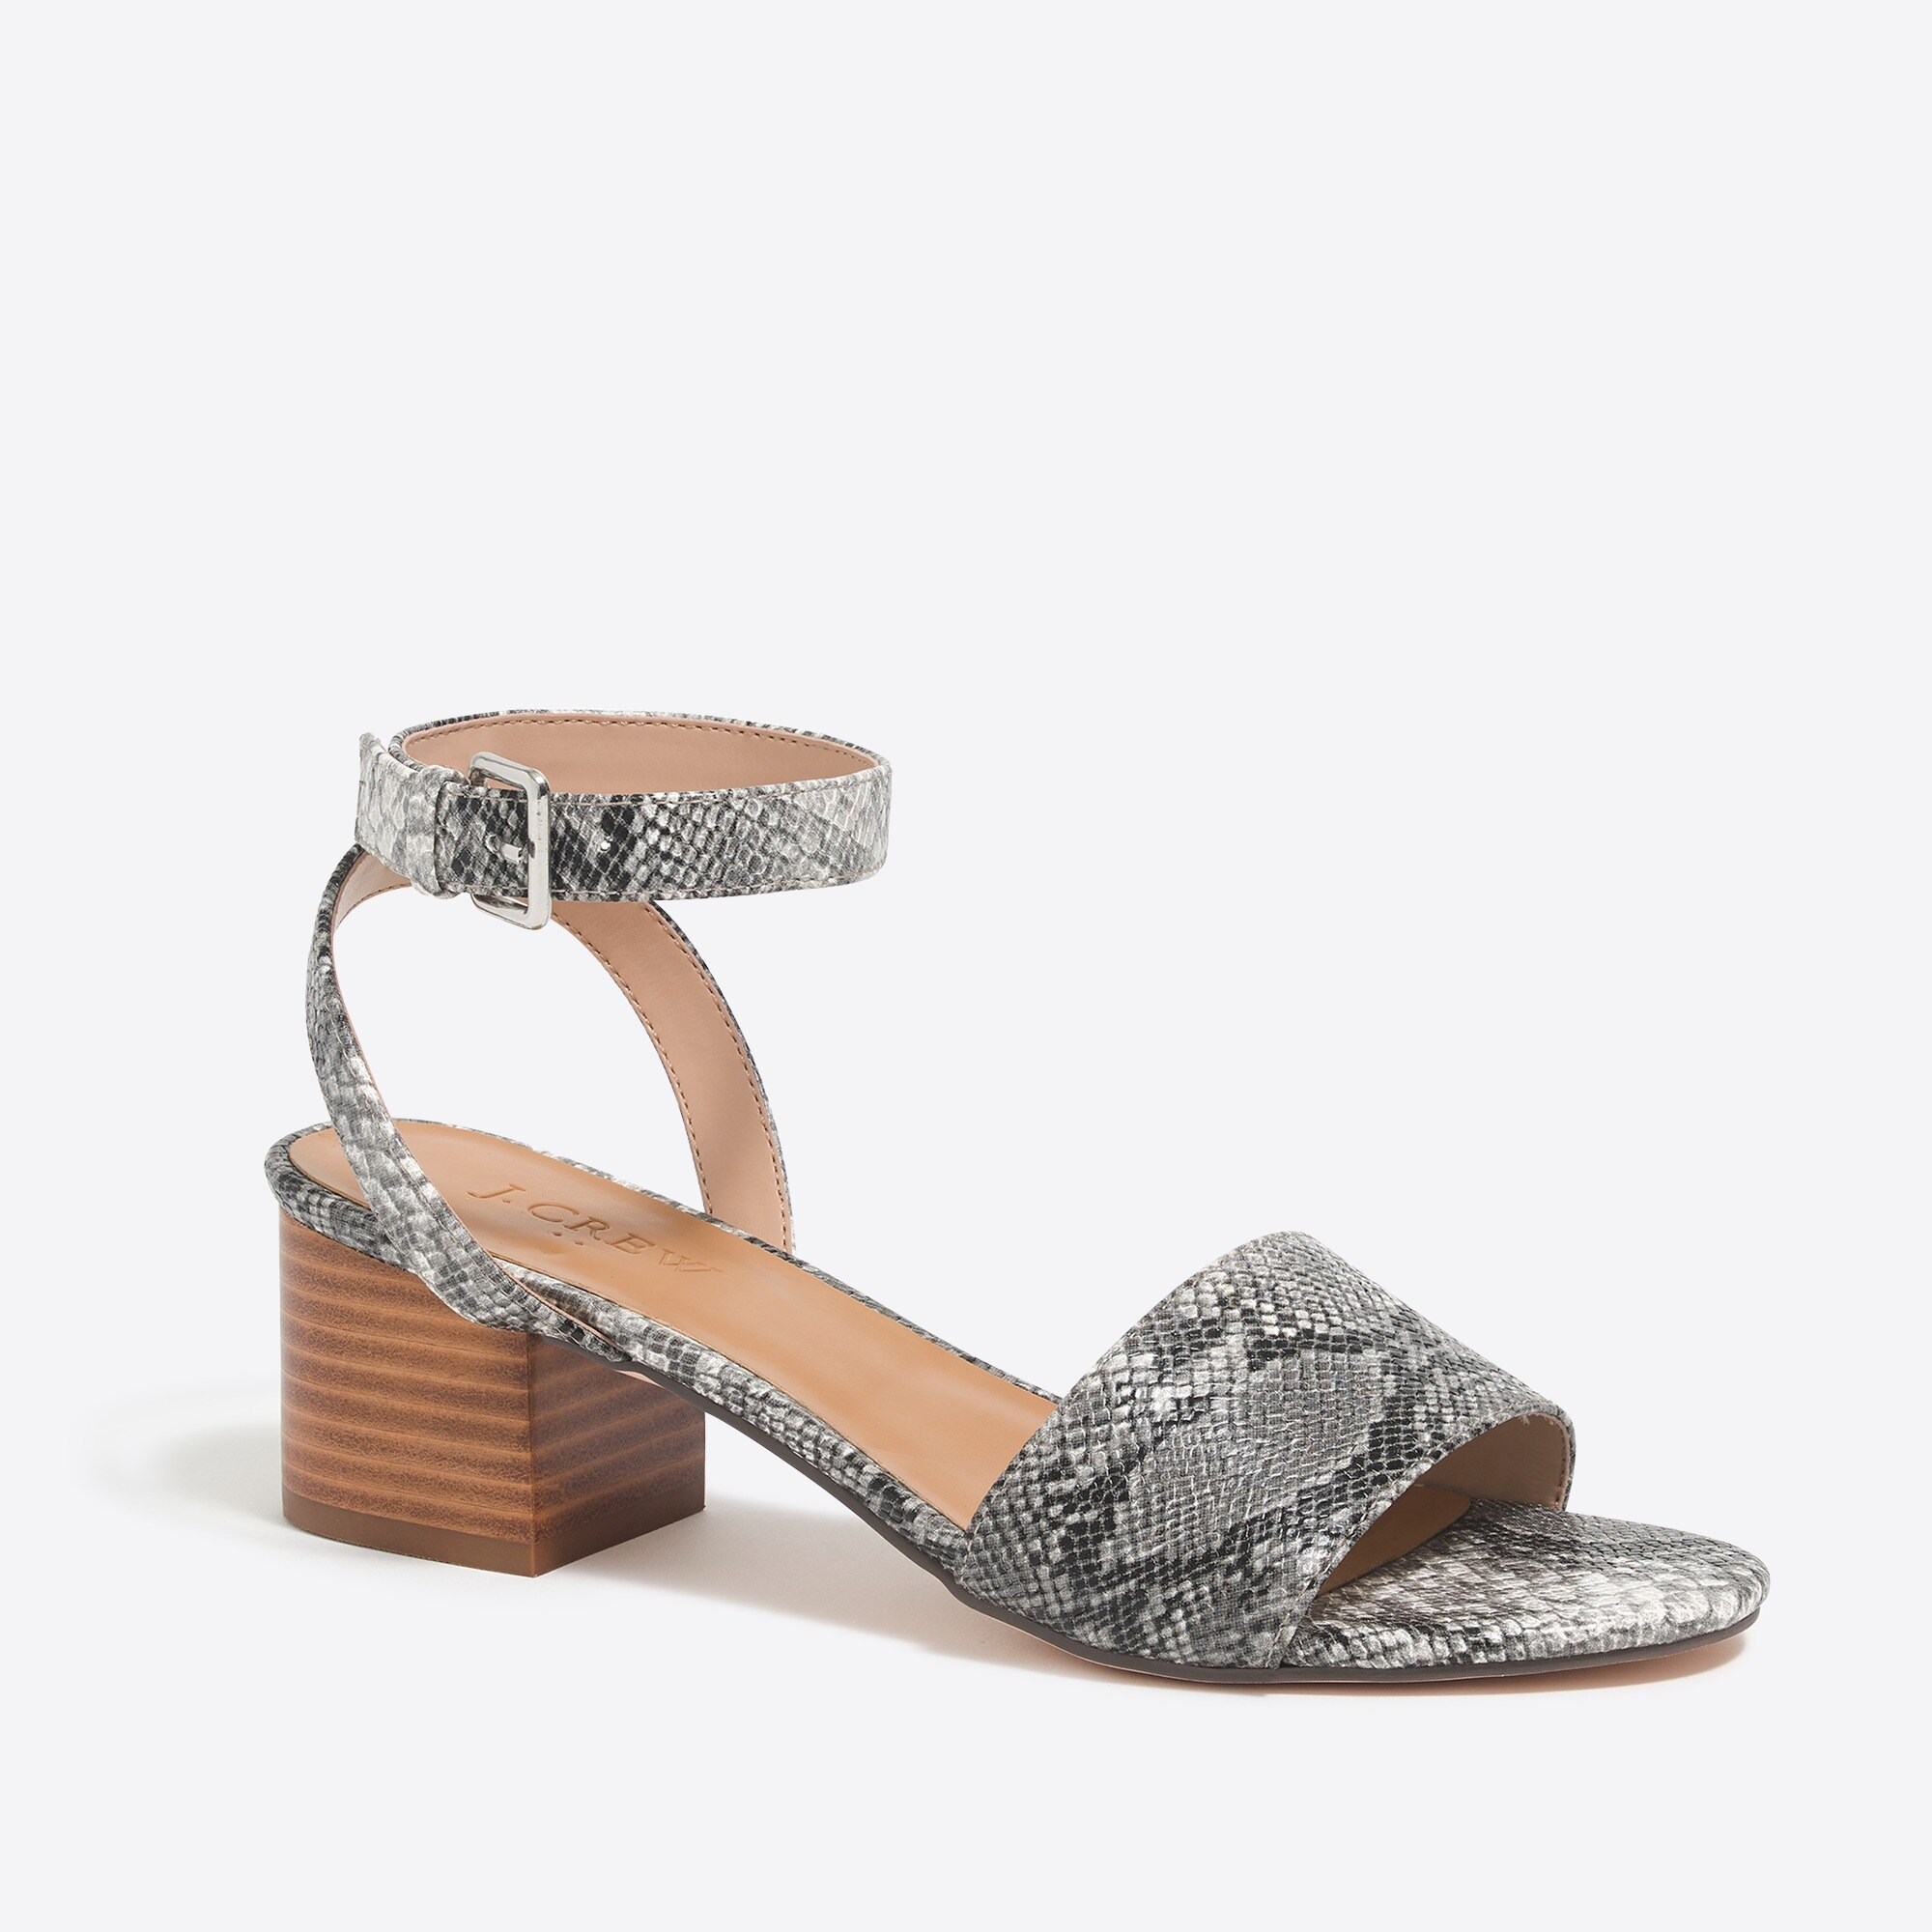 Snakeskin block-heel sandals factorywomen shoes c